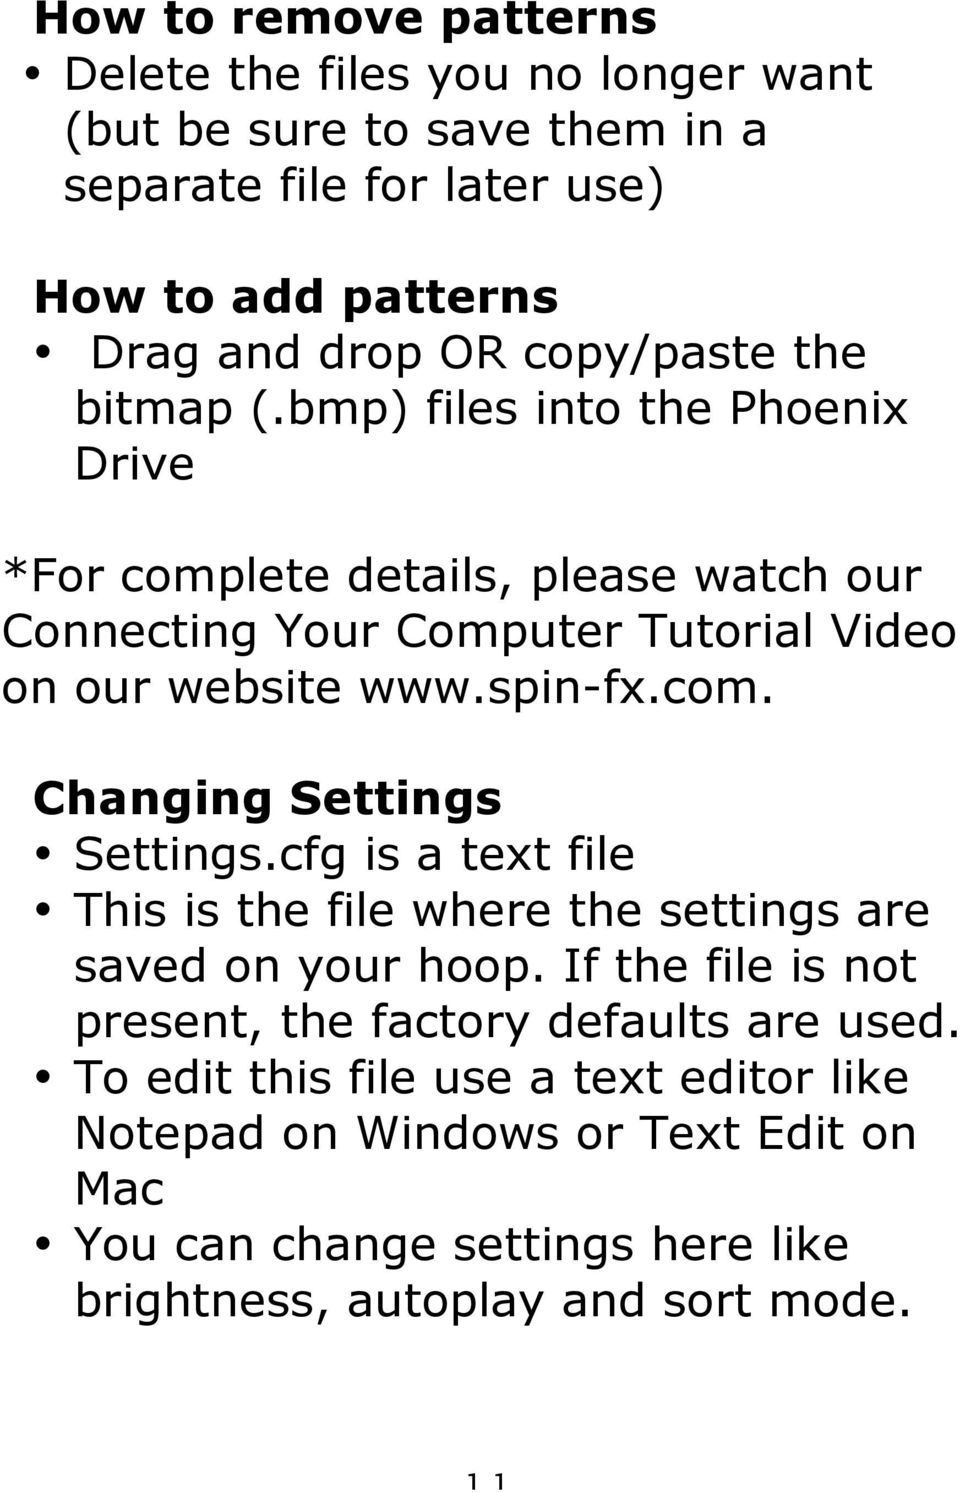 spin-fx.com. Changing Settings Settings.cfg is a text file This is the file where the settings are saved on your hoop.